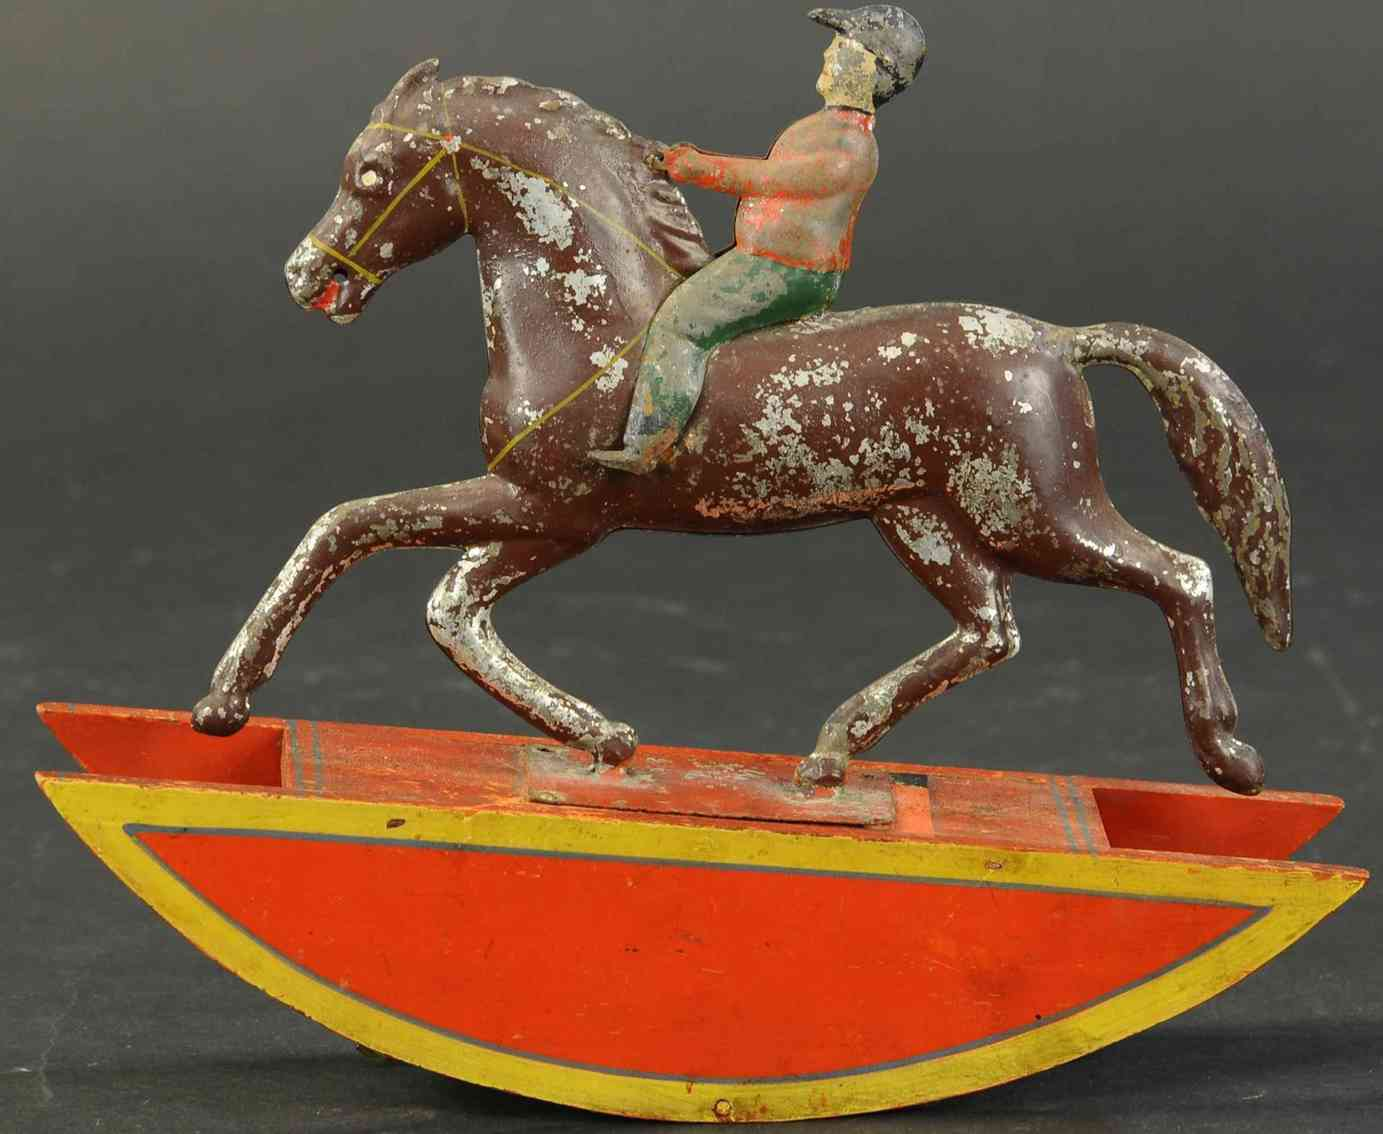 ives tin toy rocking horse with decorated wooden base rider